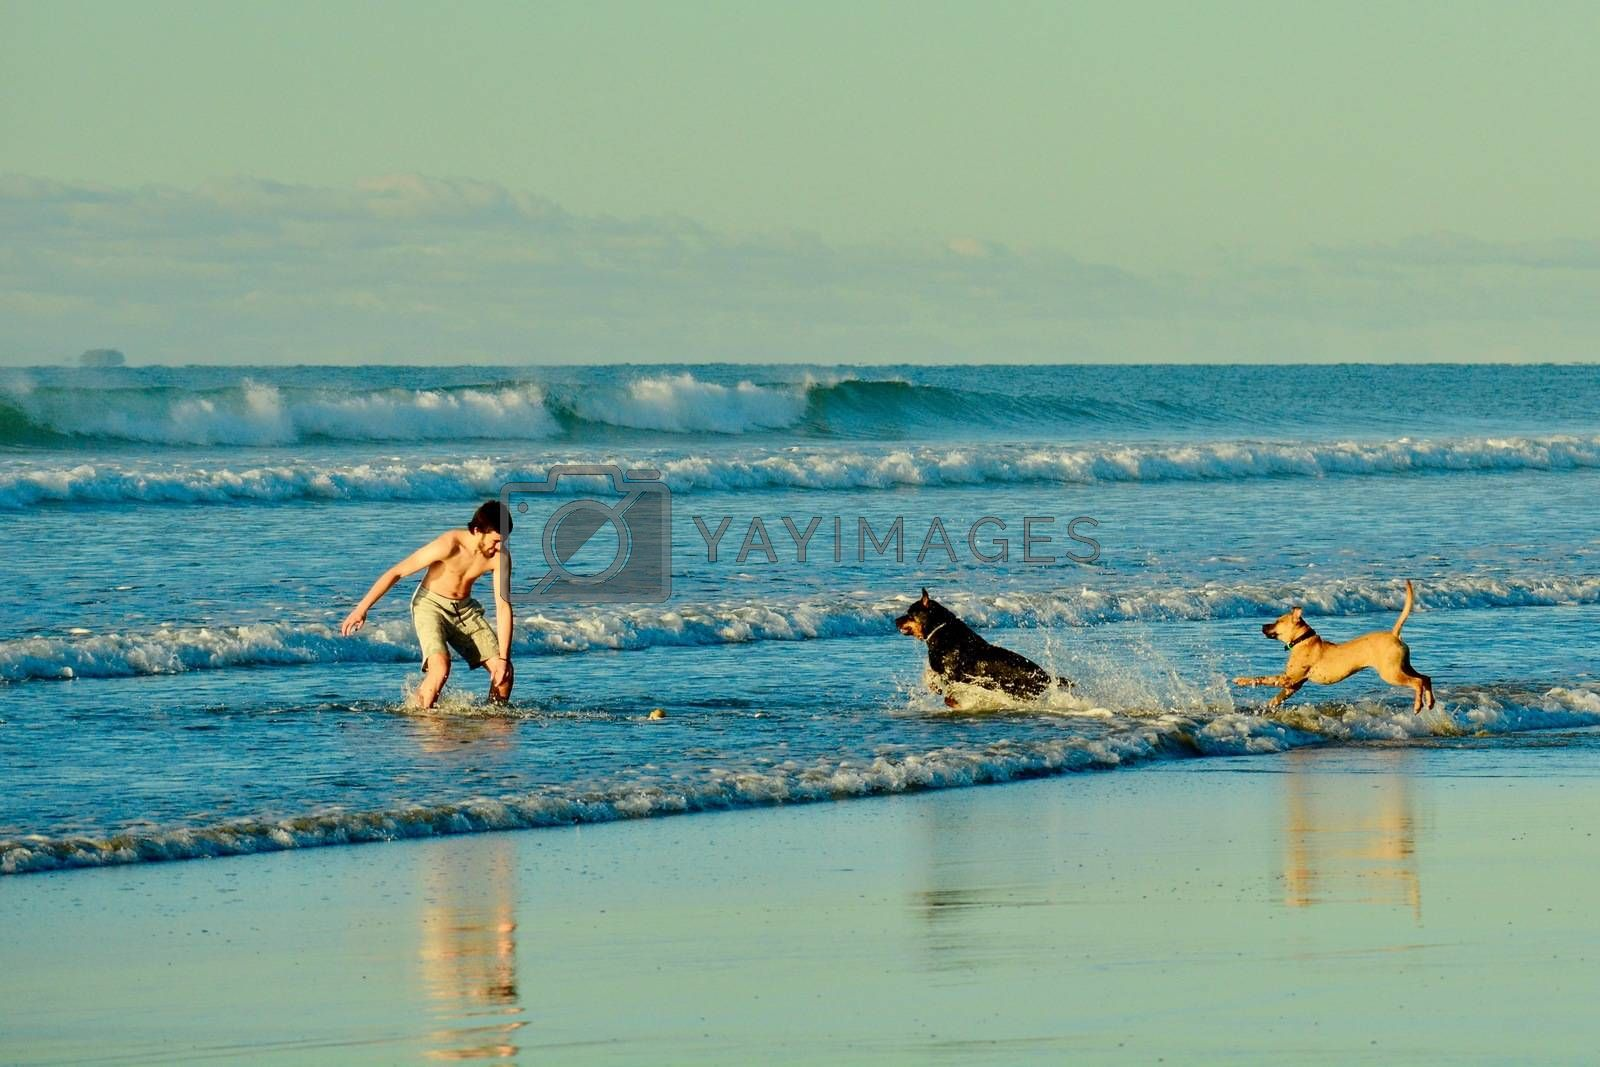 Holidays at the sea; winter time in New Zealand; wonderful pastime at the seashore; man and dogs